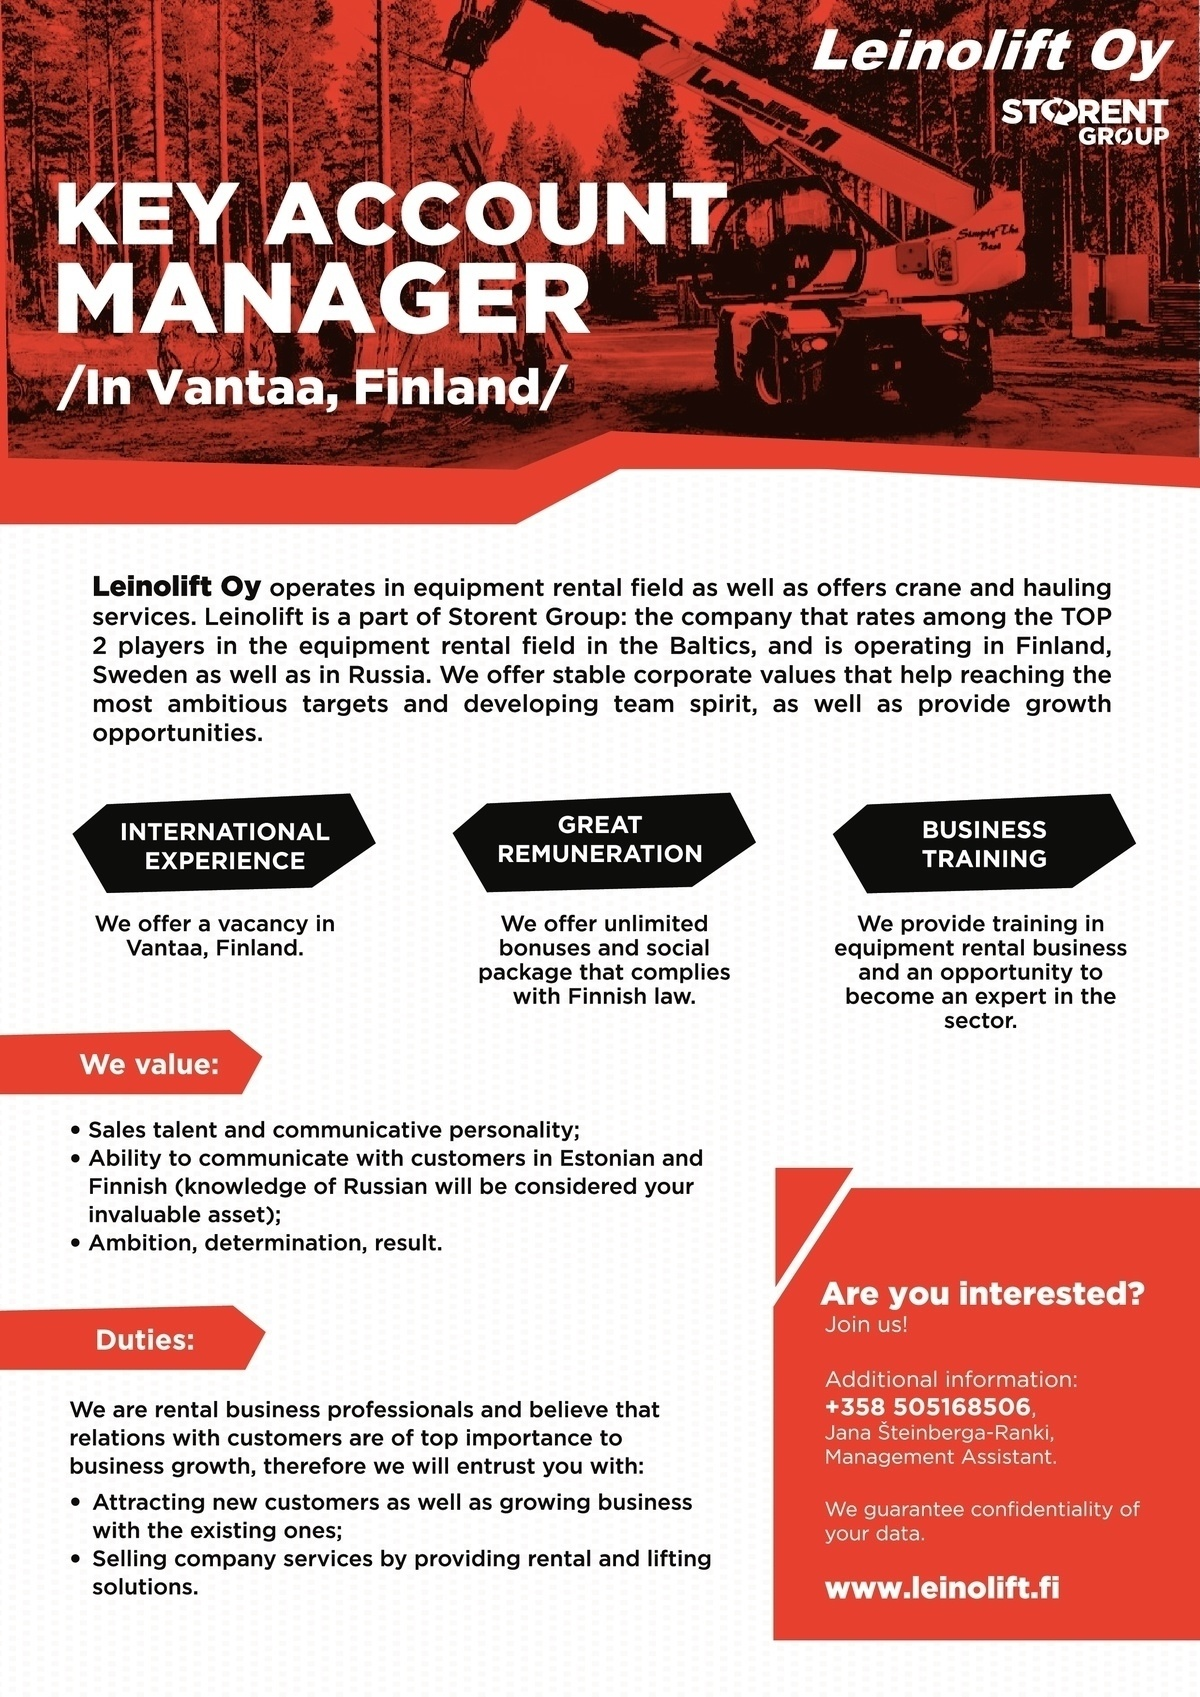 Leinolift Oy Key account manager